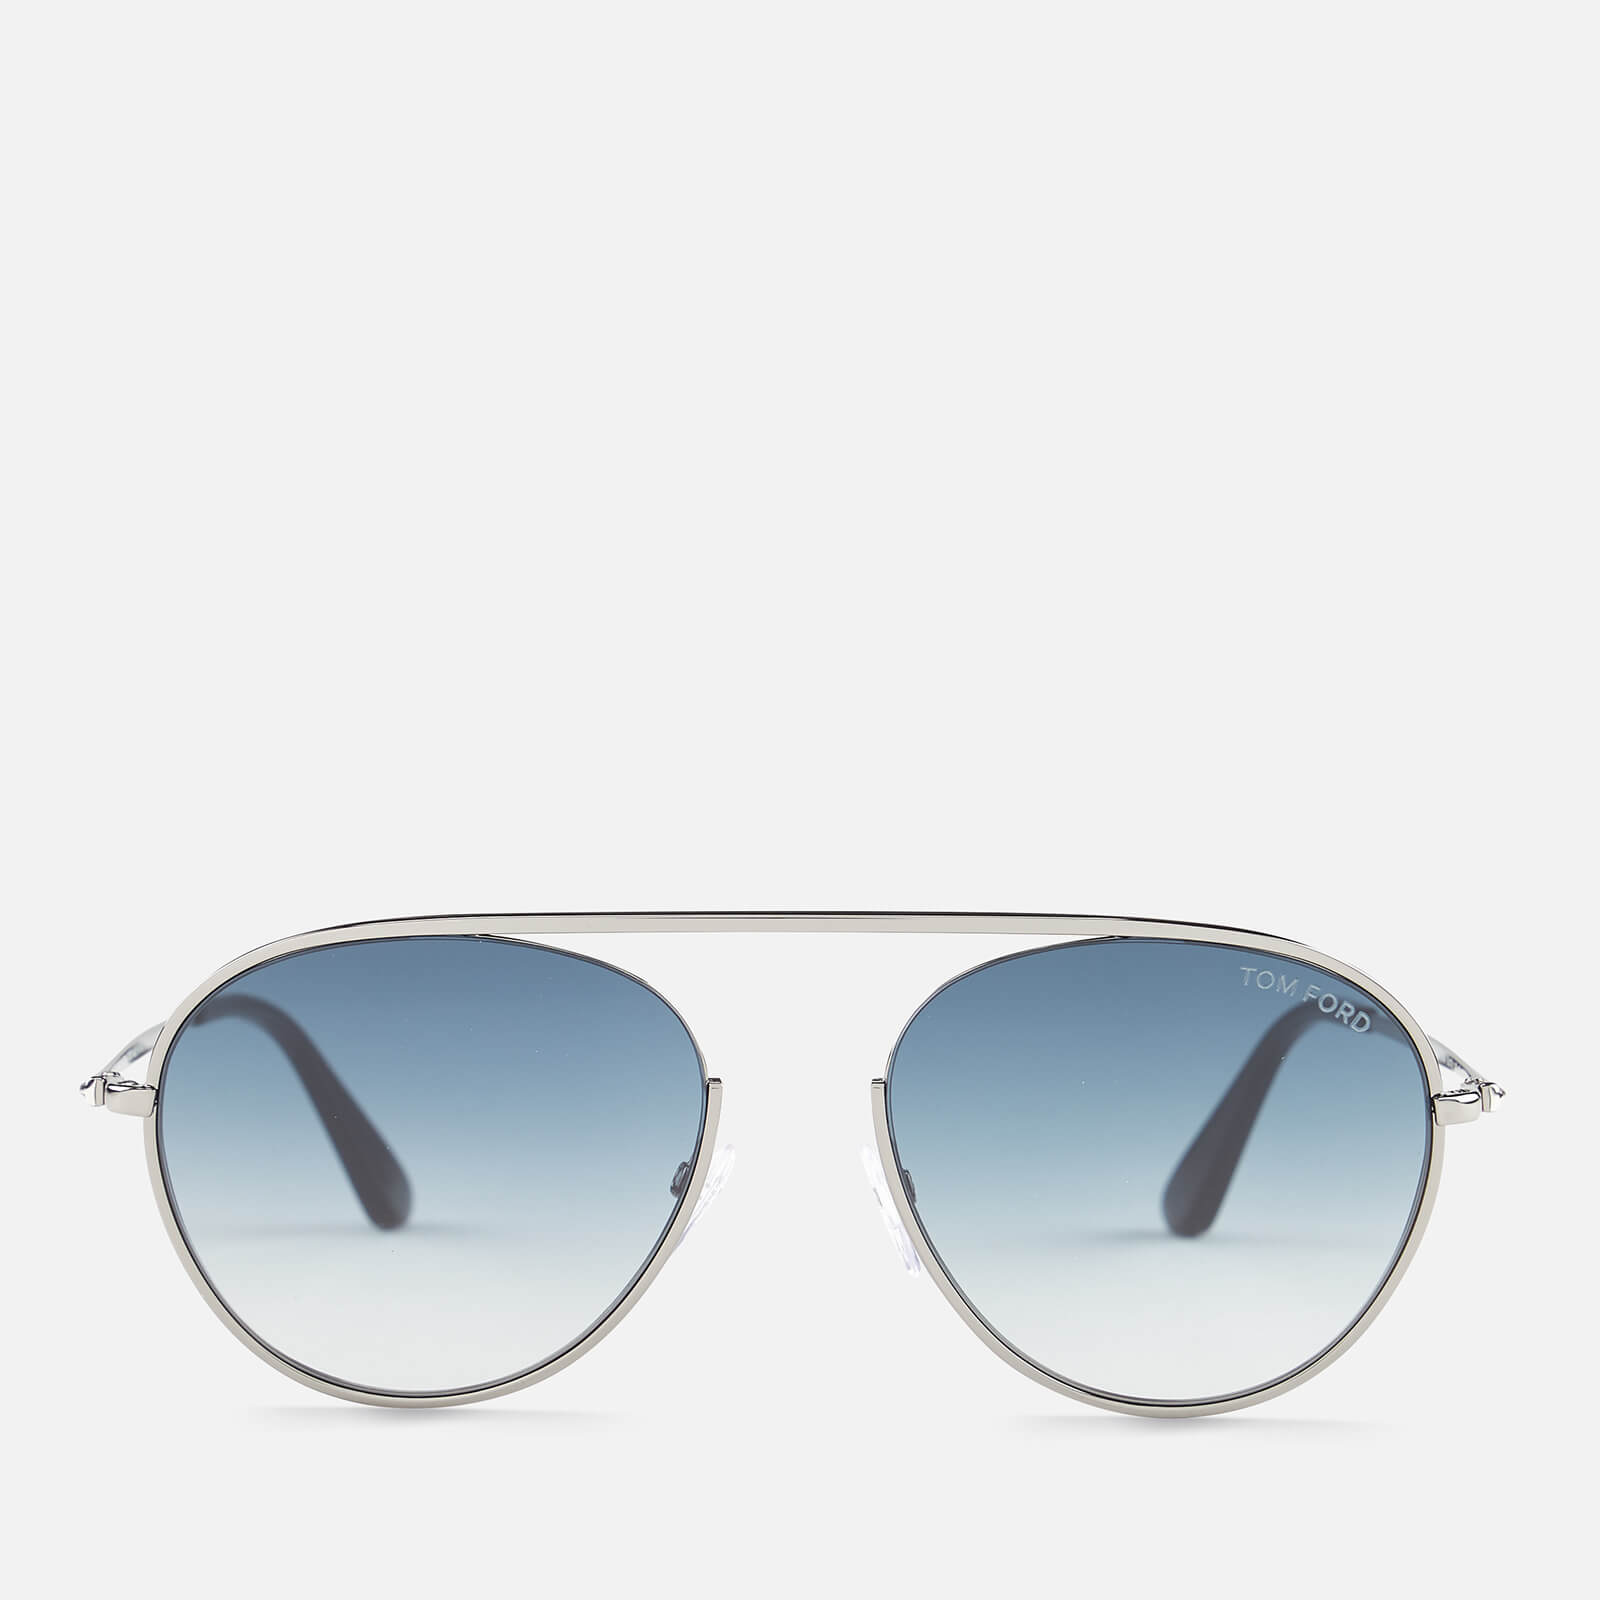 283528c47c4 Tom Ford Men s Keith Aviator Style Sunglasses - Shiny Gunmetal Gradient  Blue - Free UK Delivery over £50